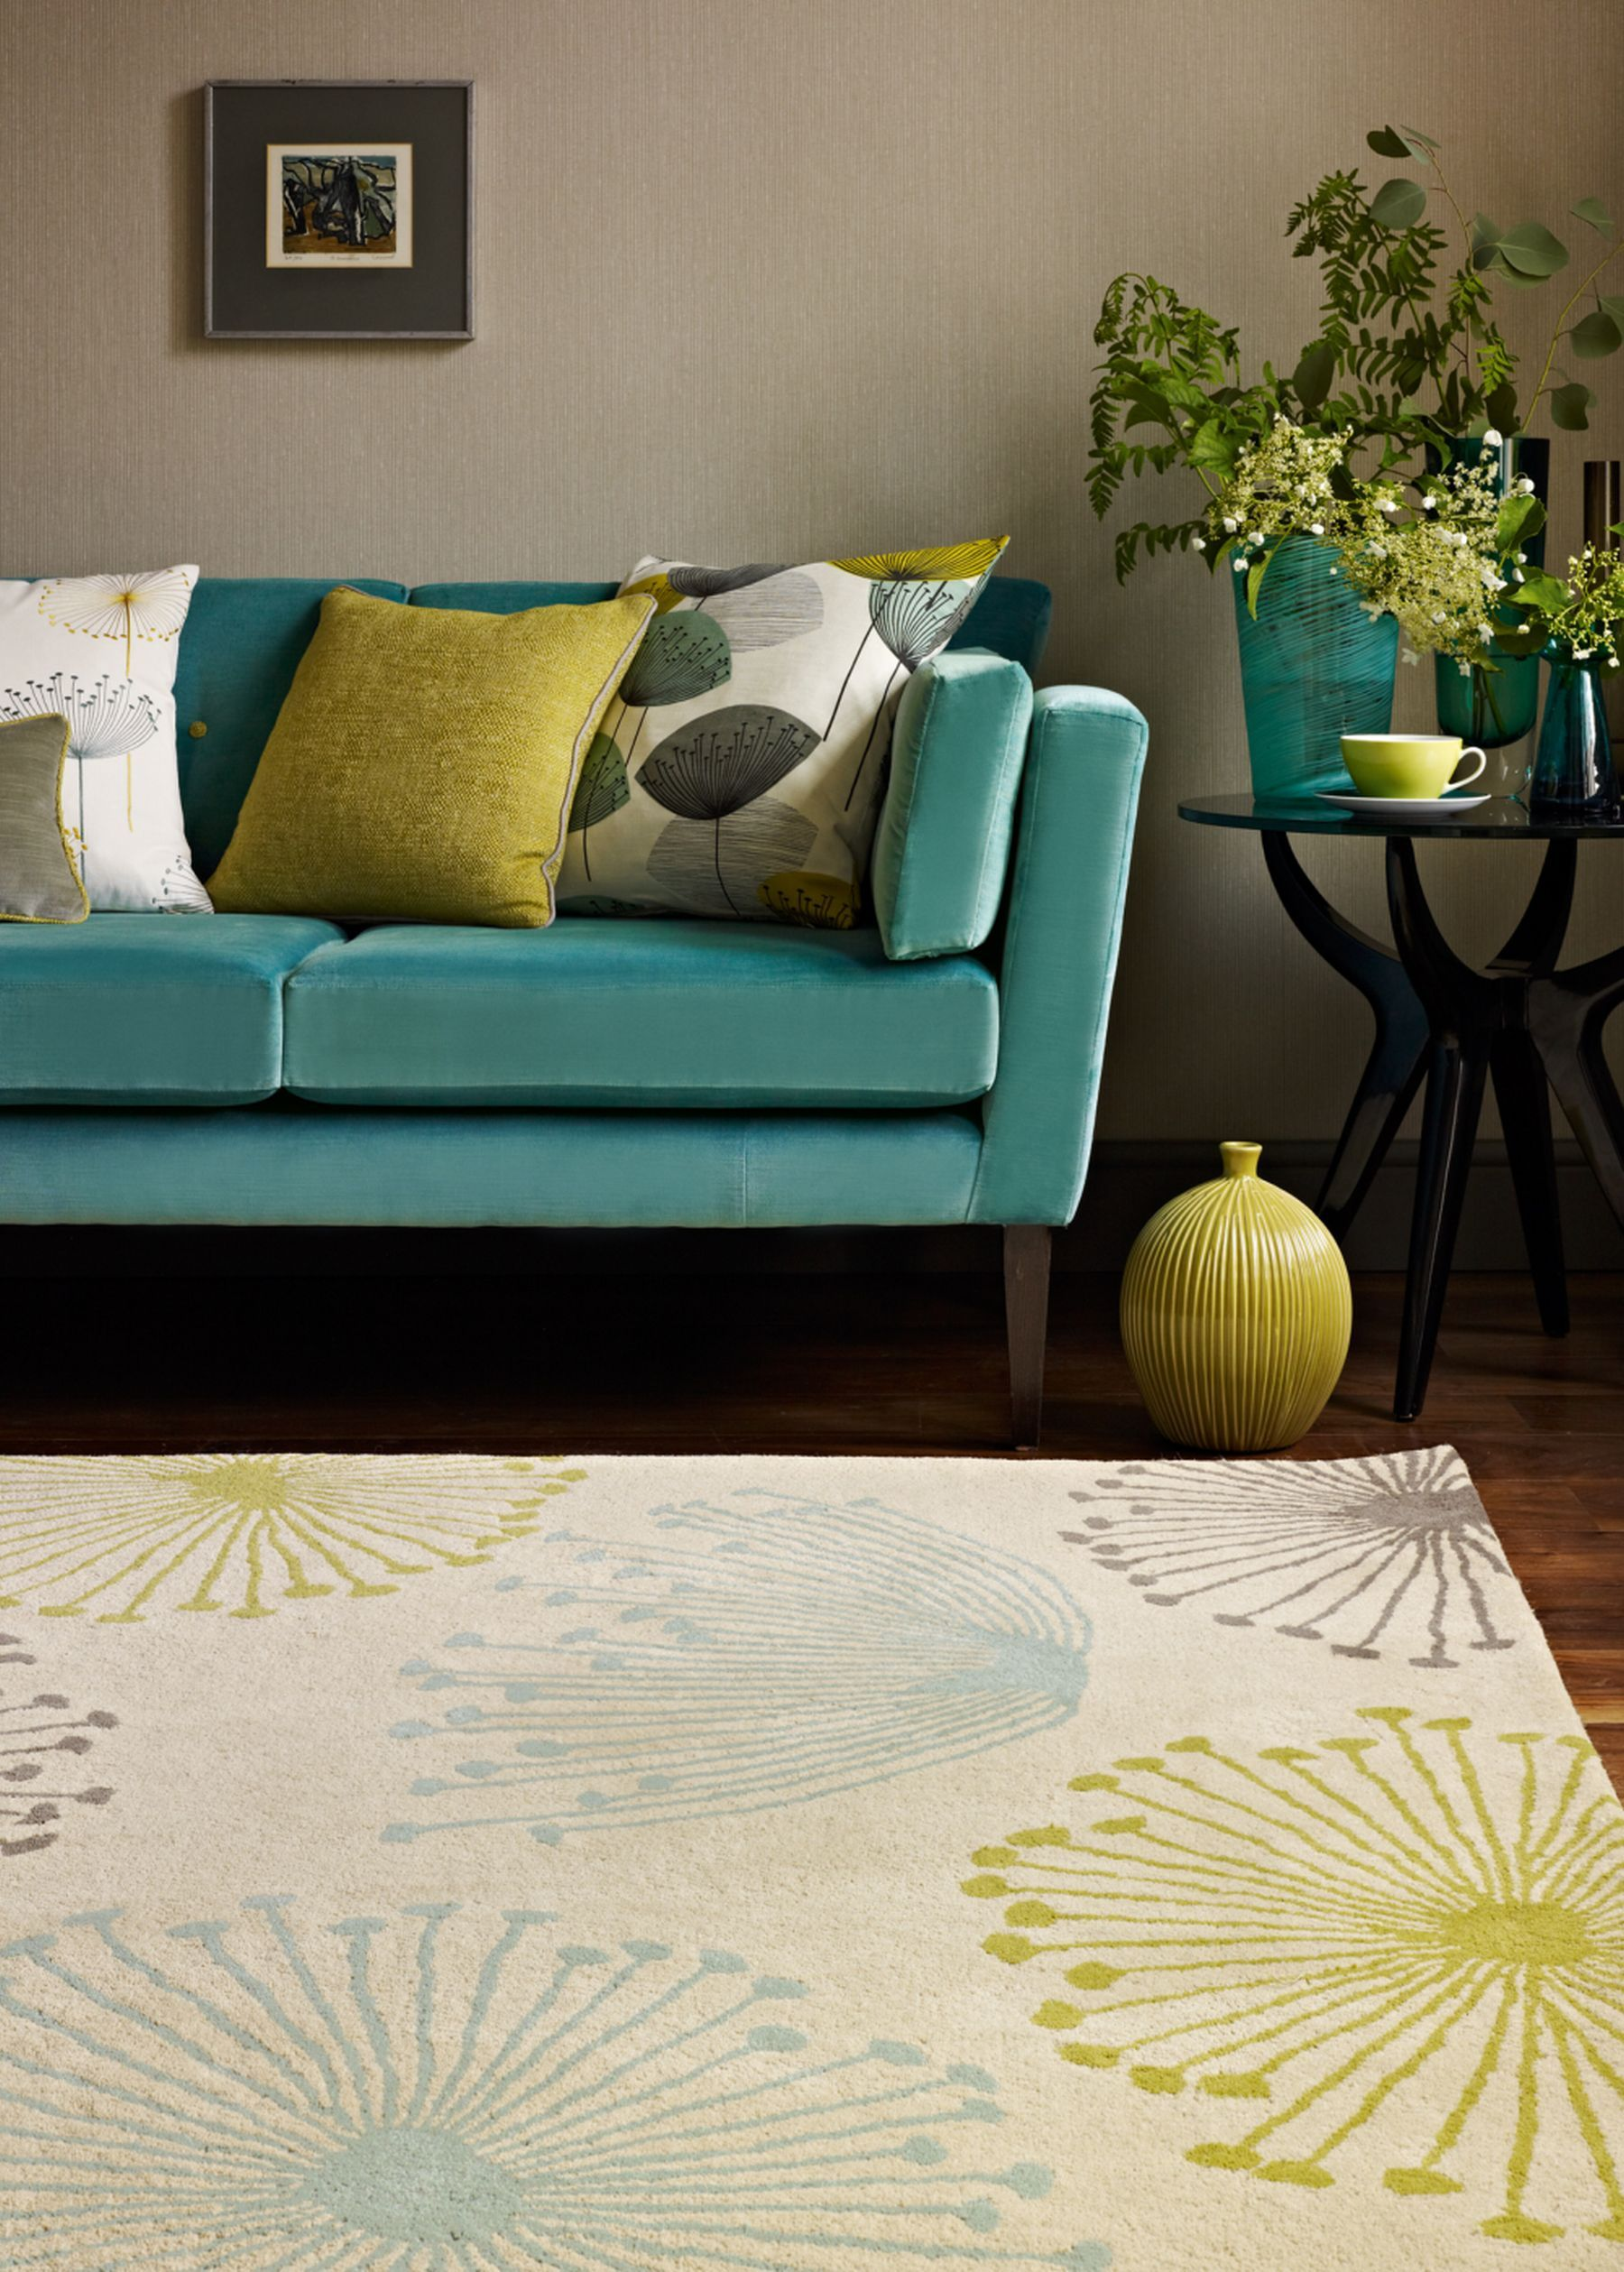 A Perfect Match To The Dandelion Clocks Fabric And Wallpaper